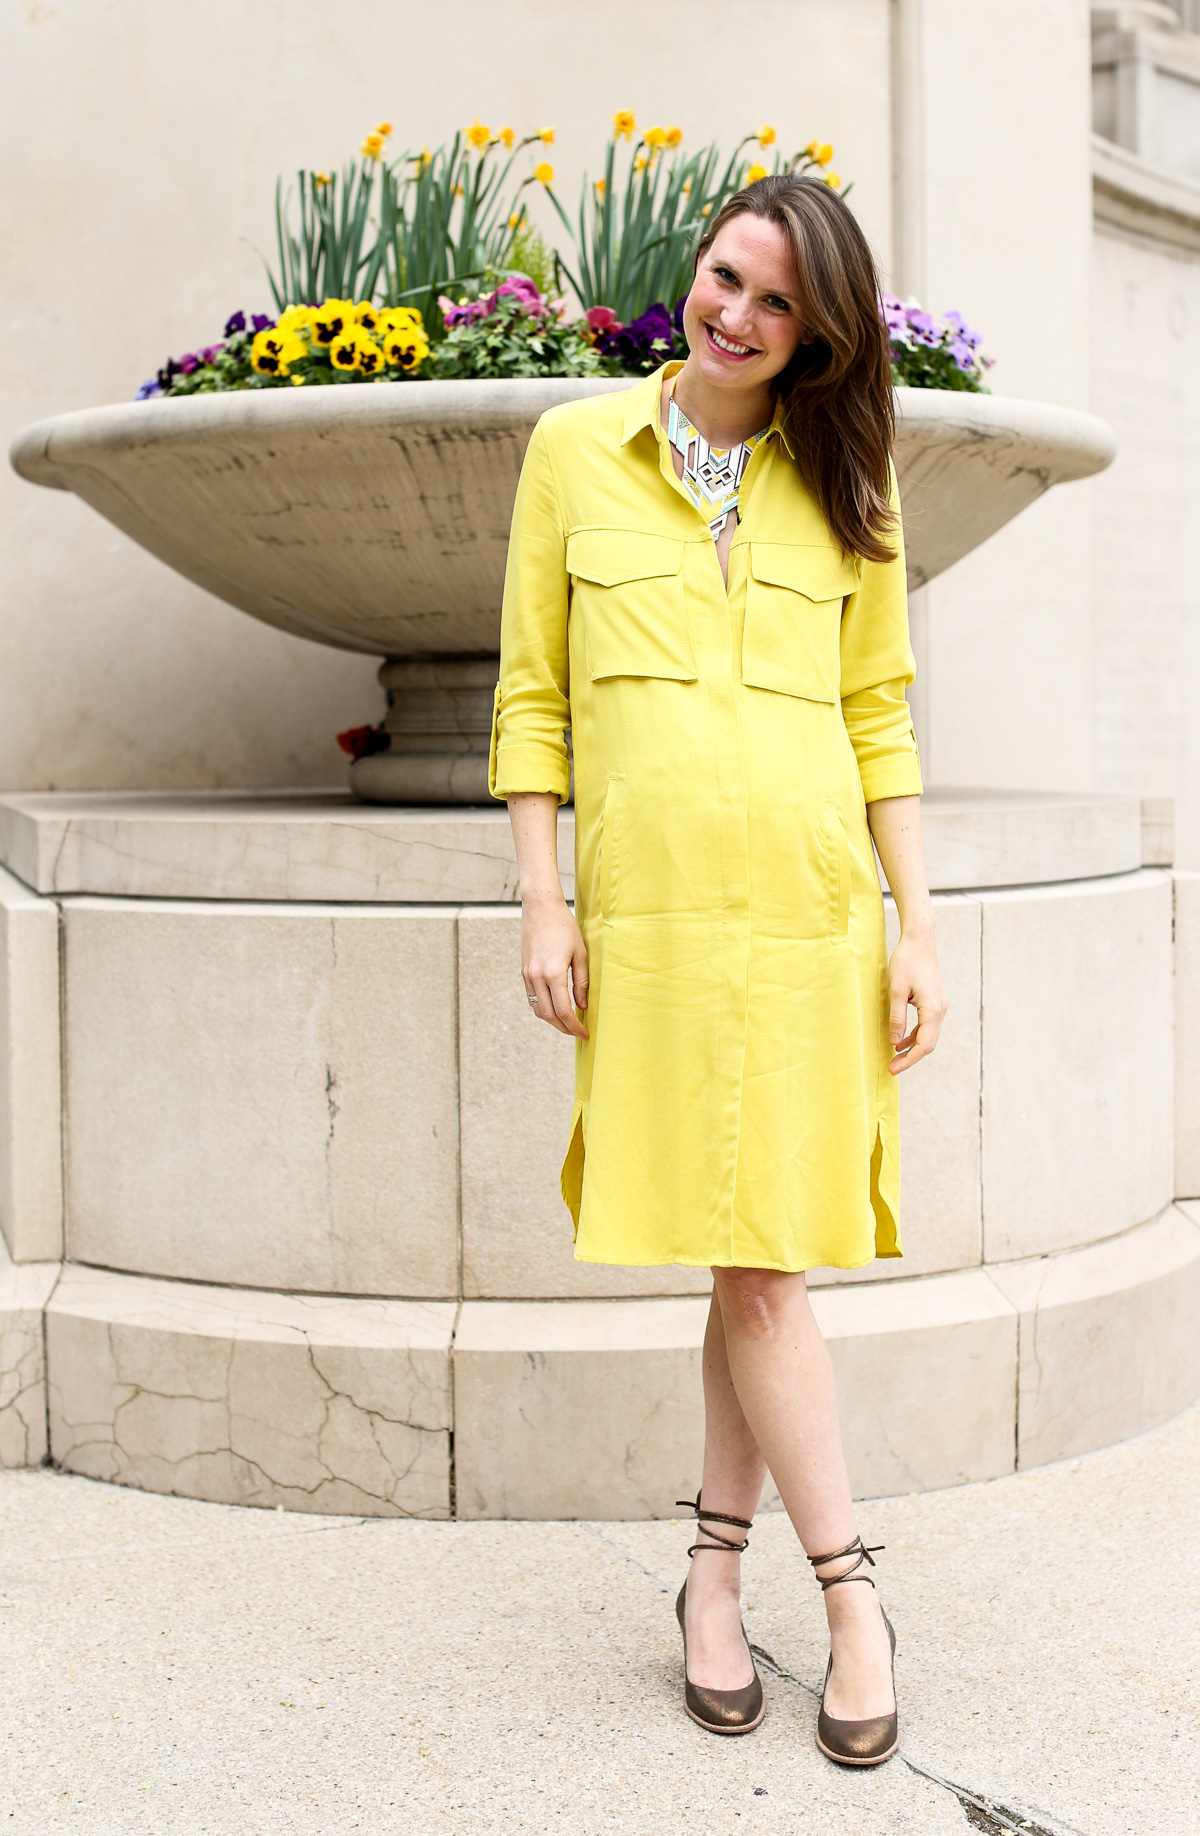 Pregnancy Fashion_Zara dress_Top Chicago Style Bloggers-4